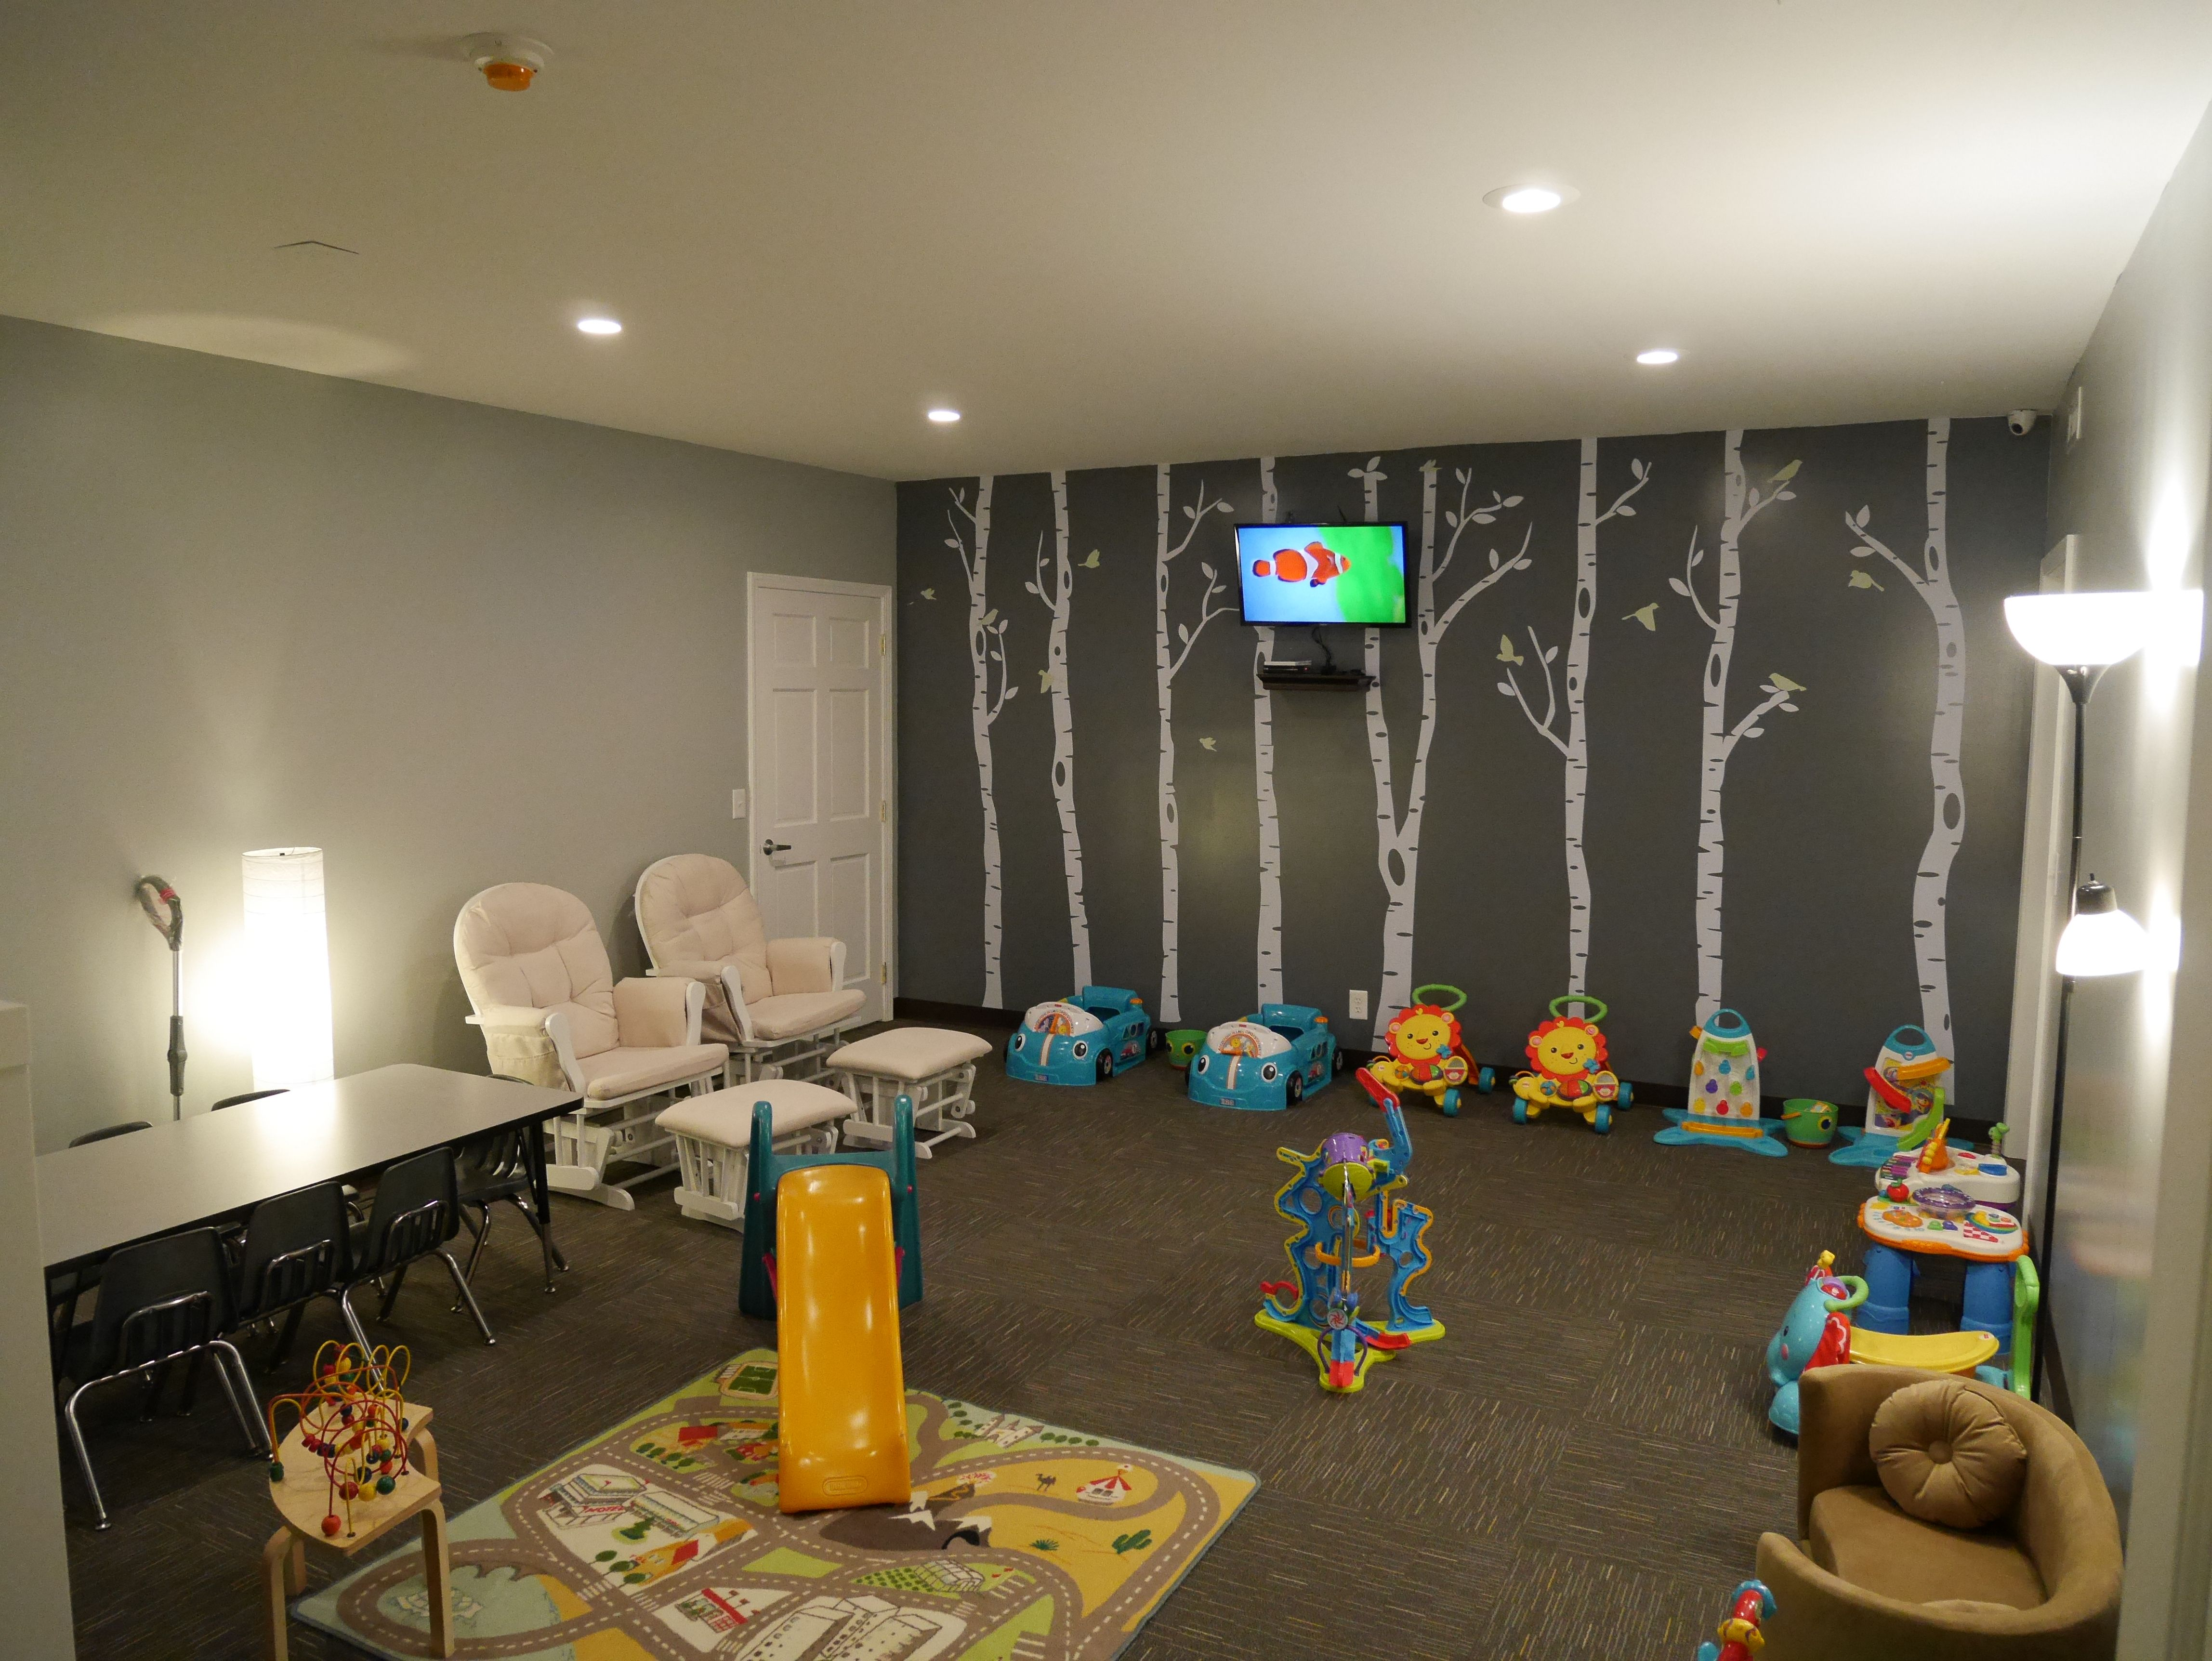 Church Nursery Accent Wall Quarter Turned Carpet Tile Kids